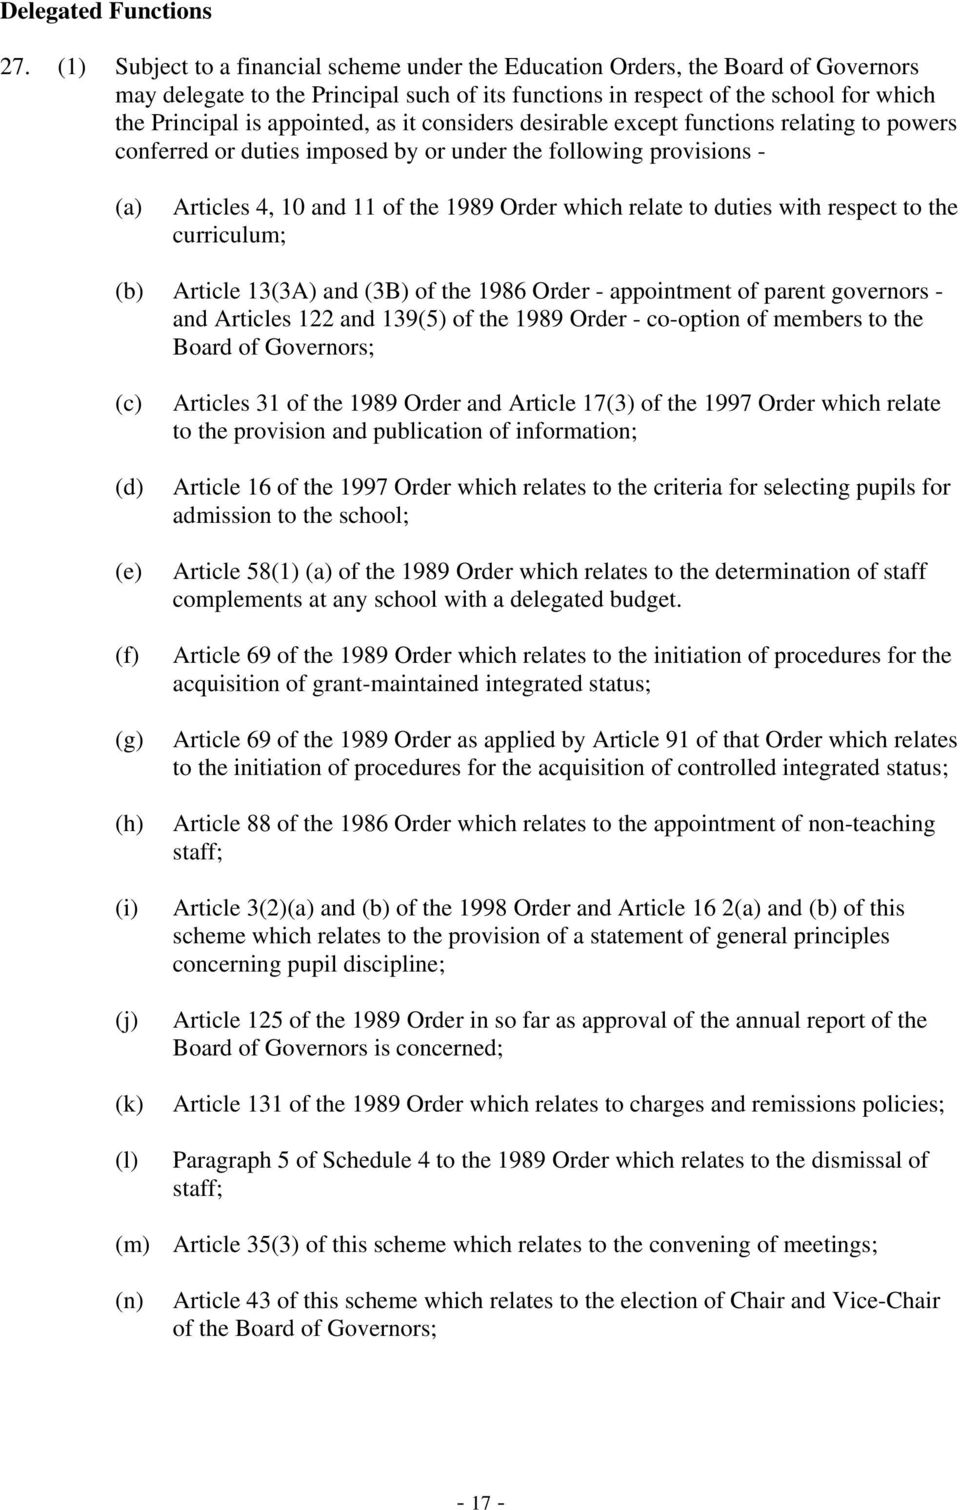 as it considers desirable except functions relating to powers conferred or duties imposed by or under the following provisions - Articles 4, 10 and 11 of the 1989 Order which relate to duties with